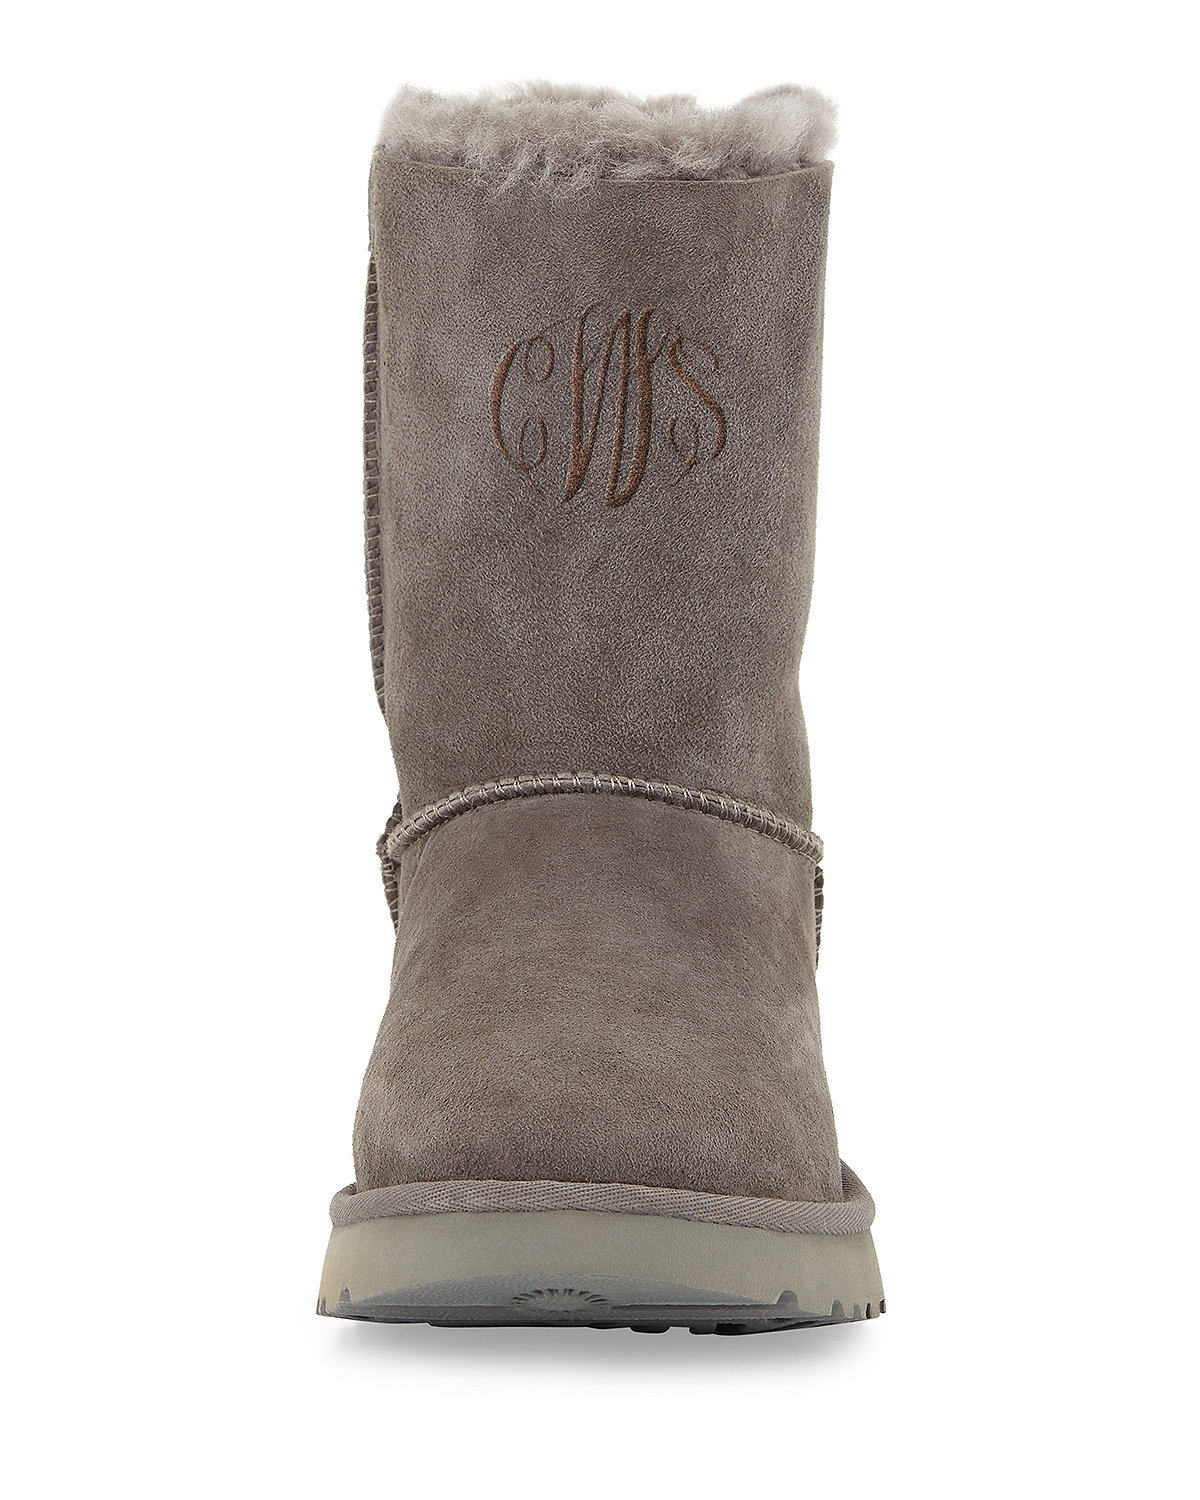 7eb0468d291d UGG Bailey Bow II Boots